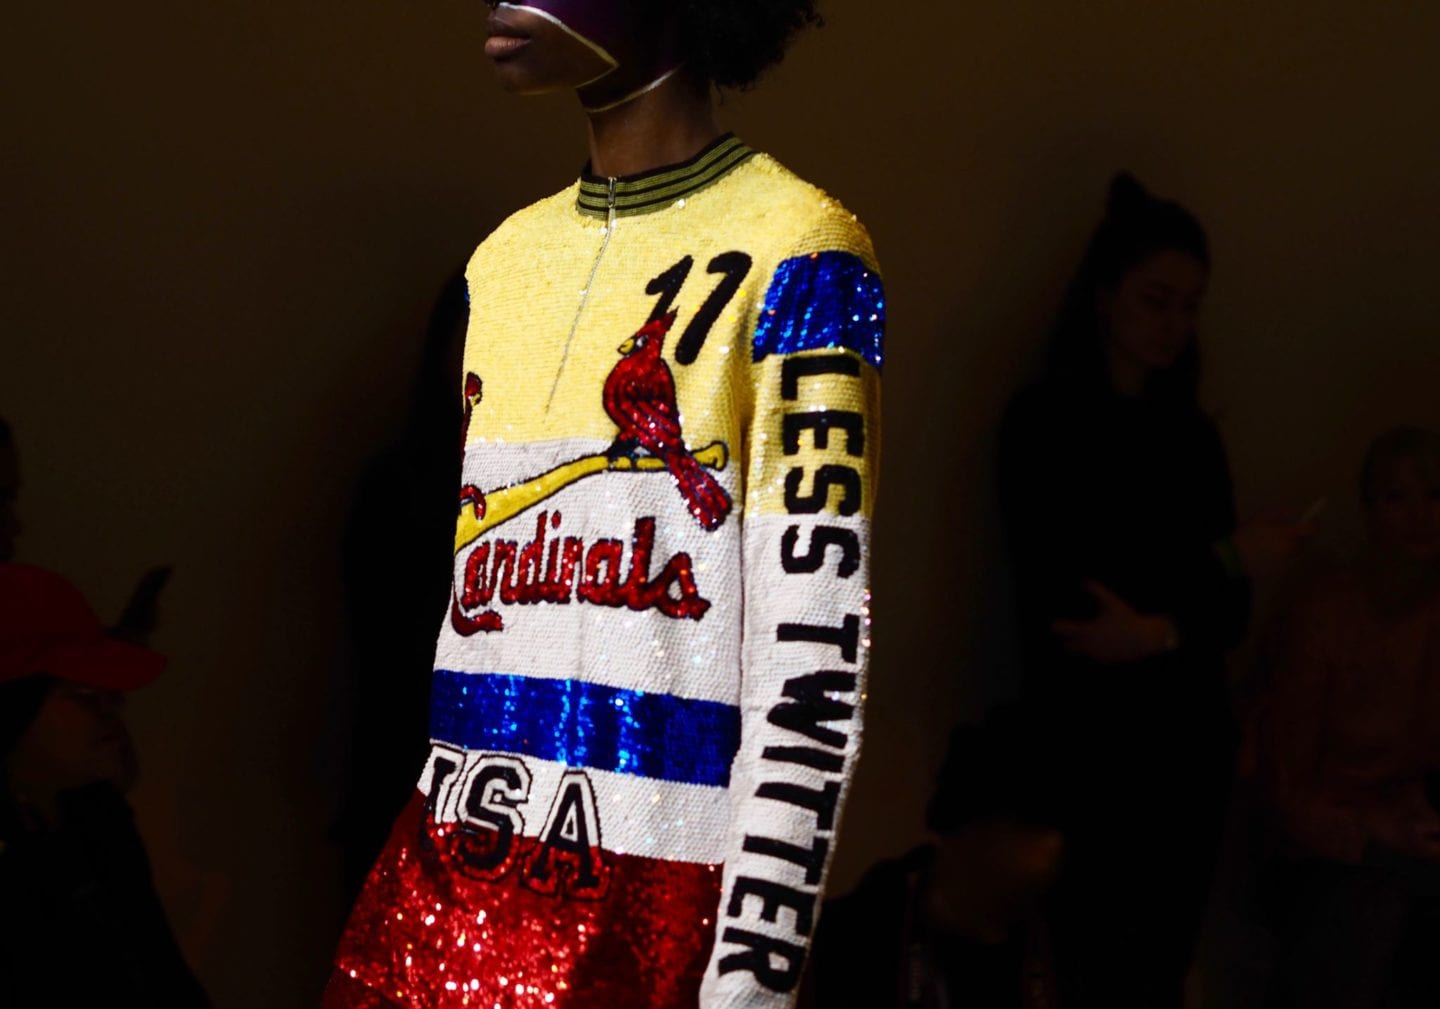 ashish-london-fashion-week-show-catwalk-.jpg